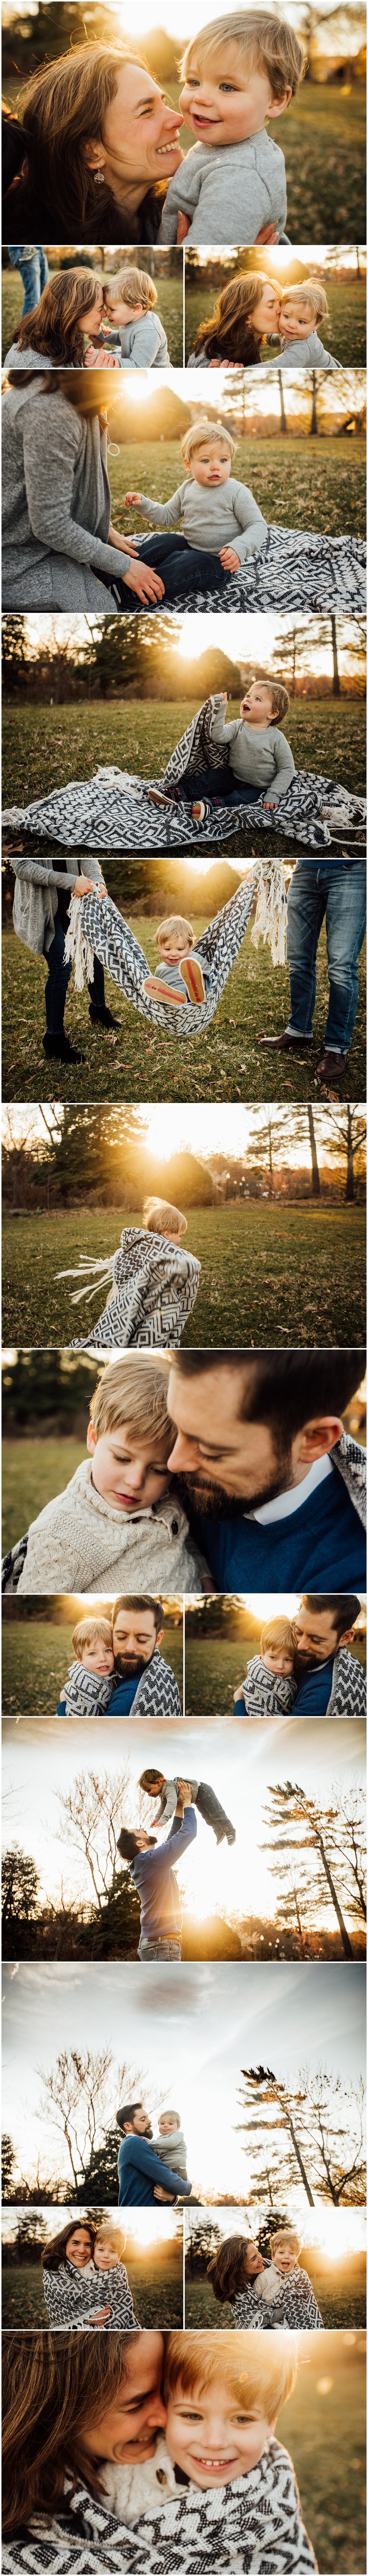 sunlit family session in field with two boys by Huntsville and Madison Alabama family photographer Rachel K Photo